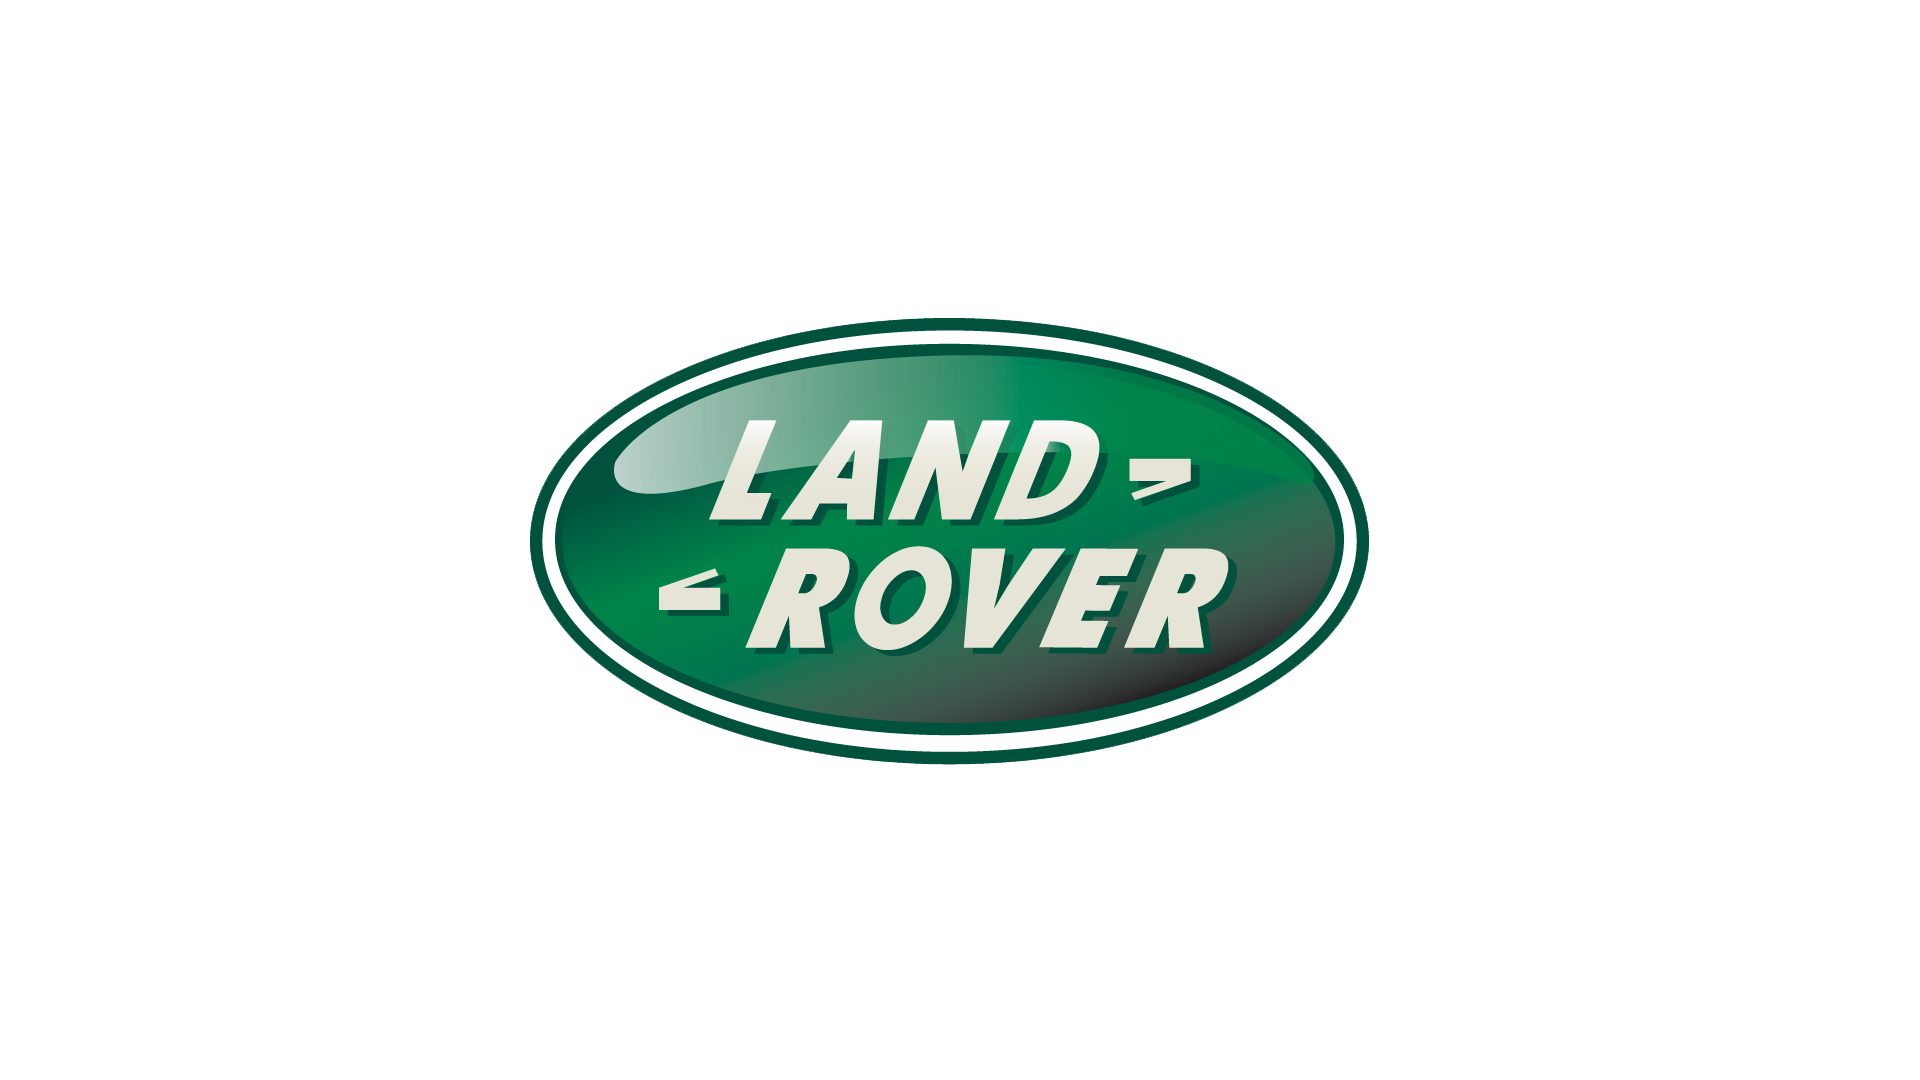 Image result for jaguar landrover logo clear background